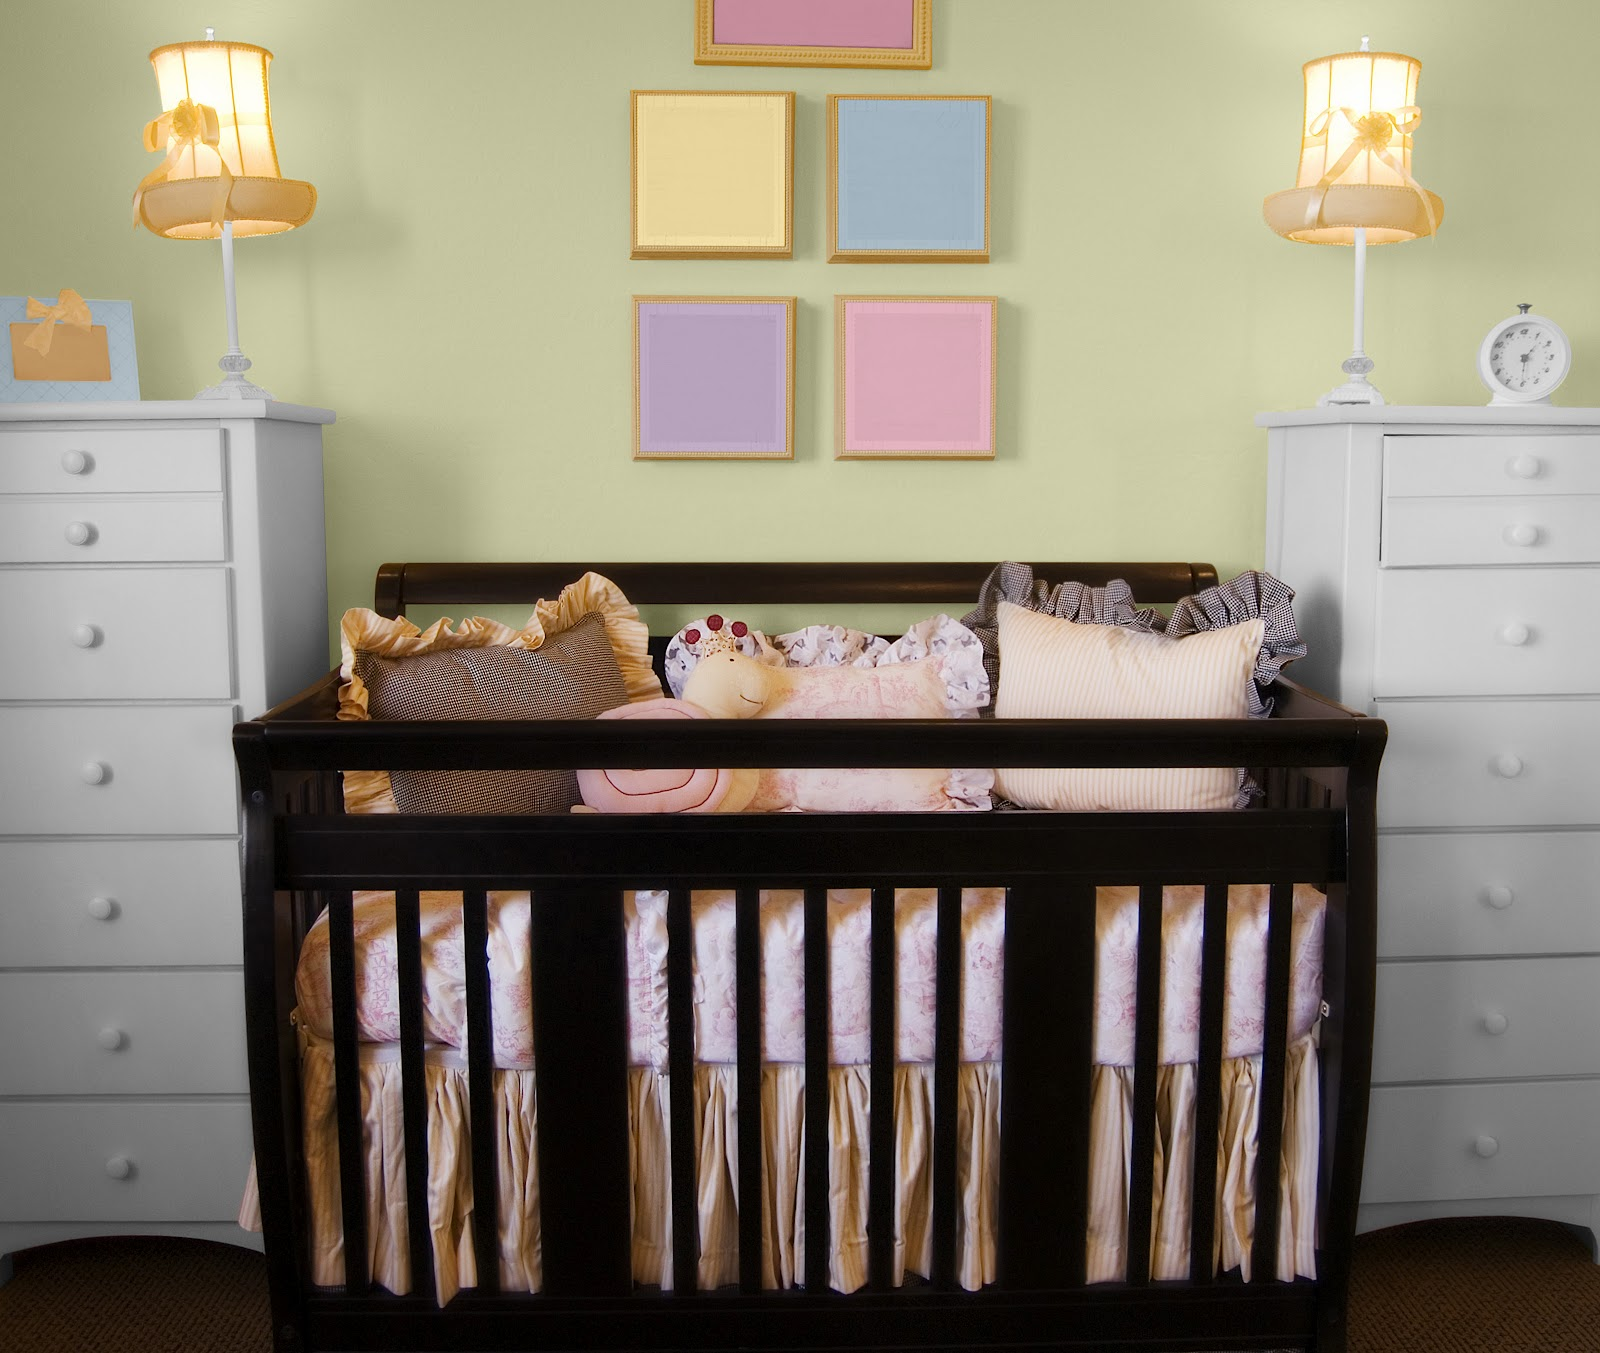 Top 10 baby nursery room colors and decorating ideas Calming colors for baby nursery